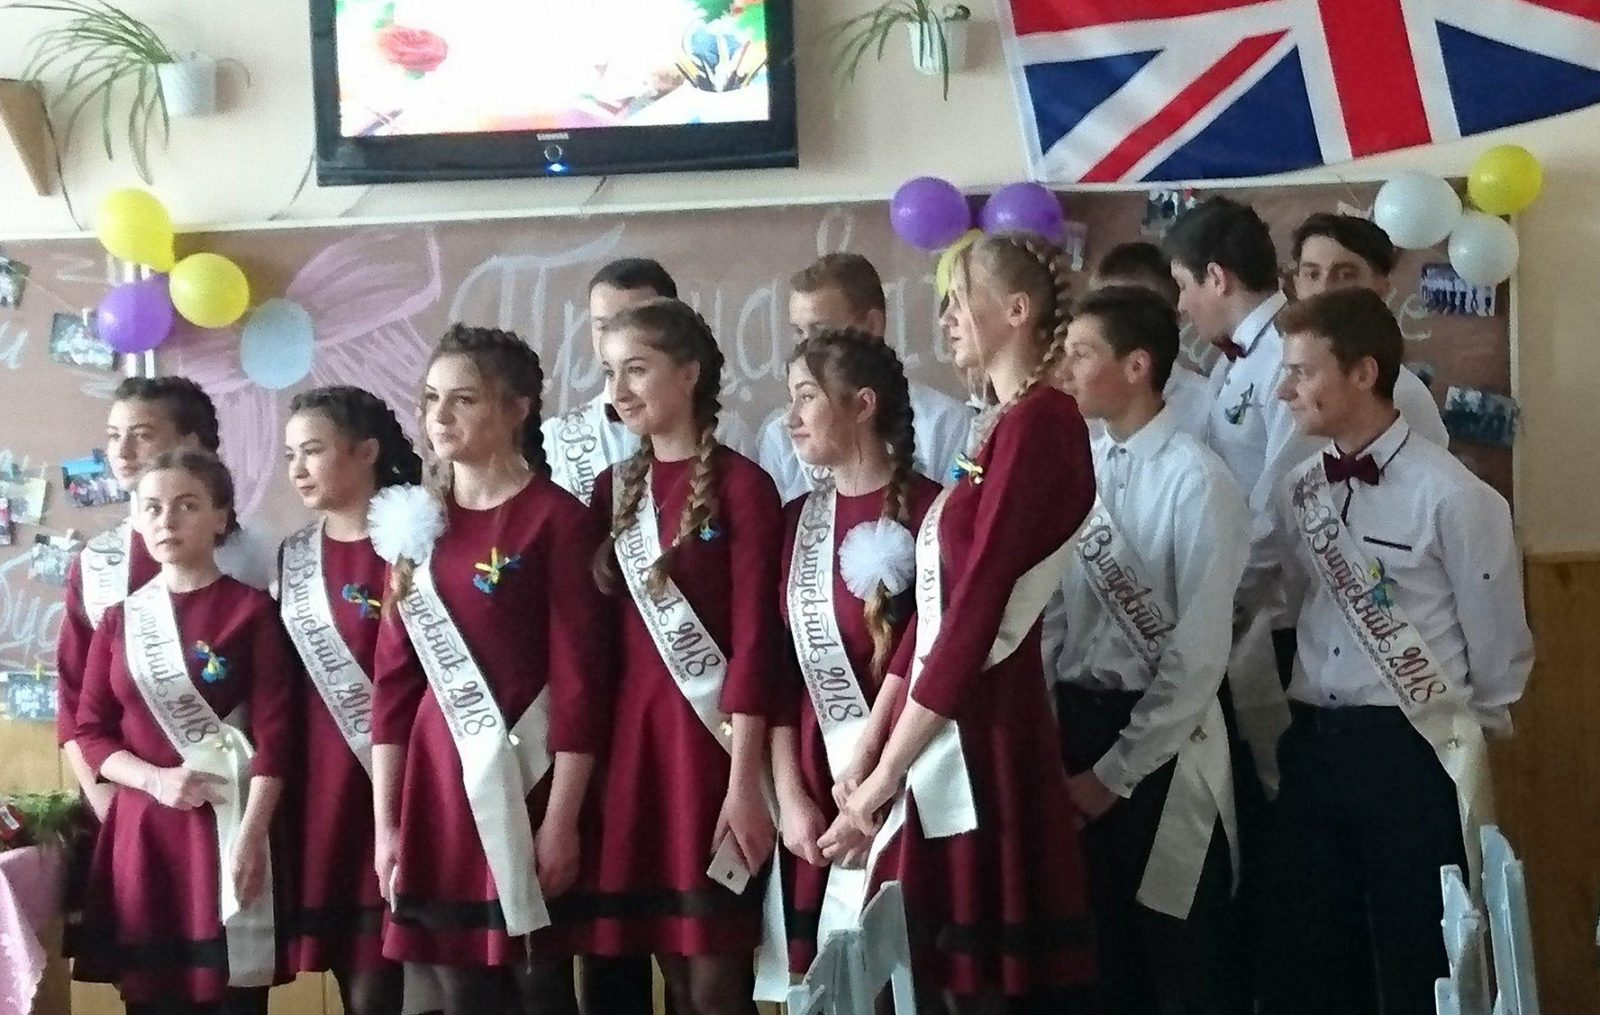 Seniors from the local school sing a song of thanks to their teacher. The Union Jack is an important symbol for them too, as they are the first class which has had English classes since the third class. Photo: Michael V. Owens